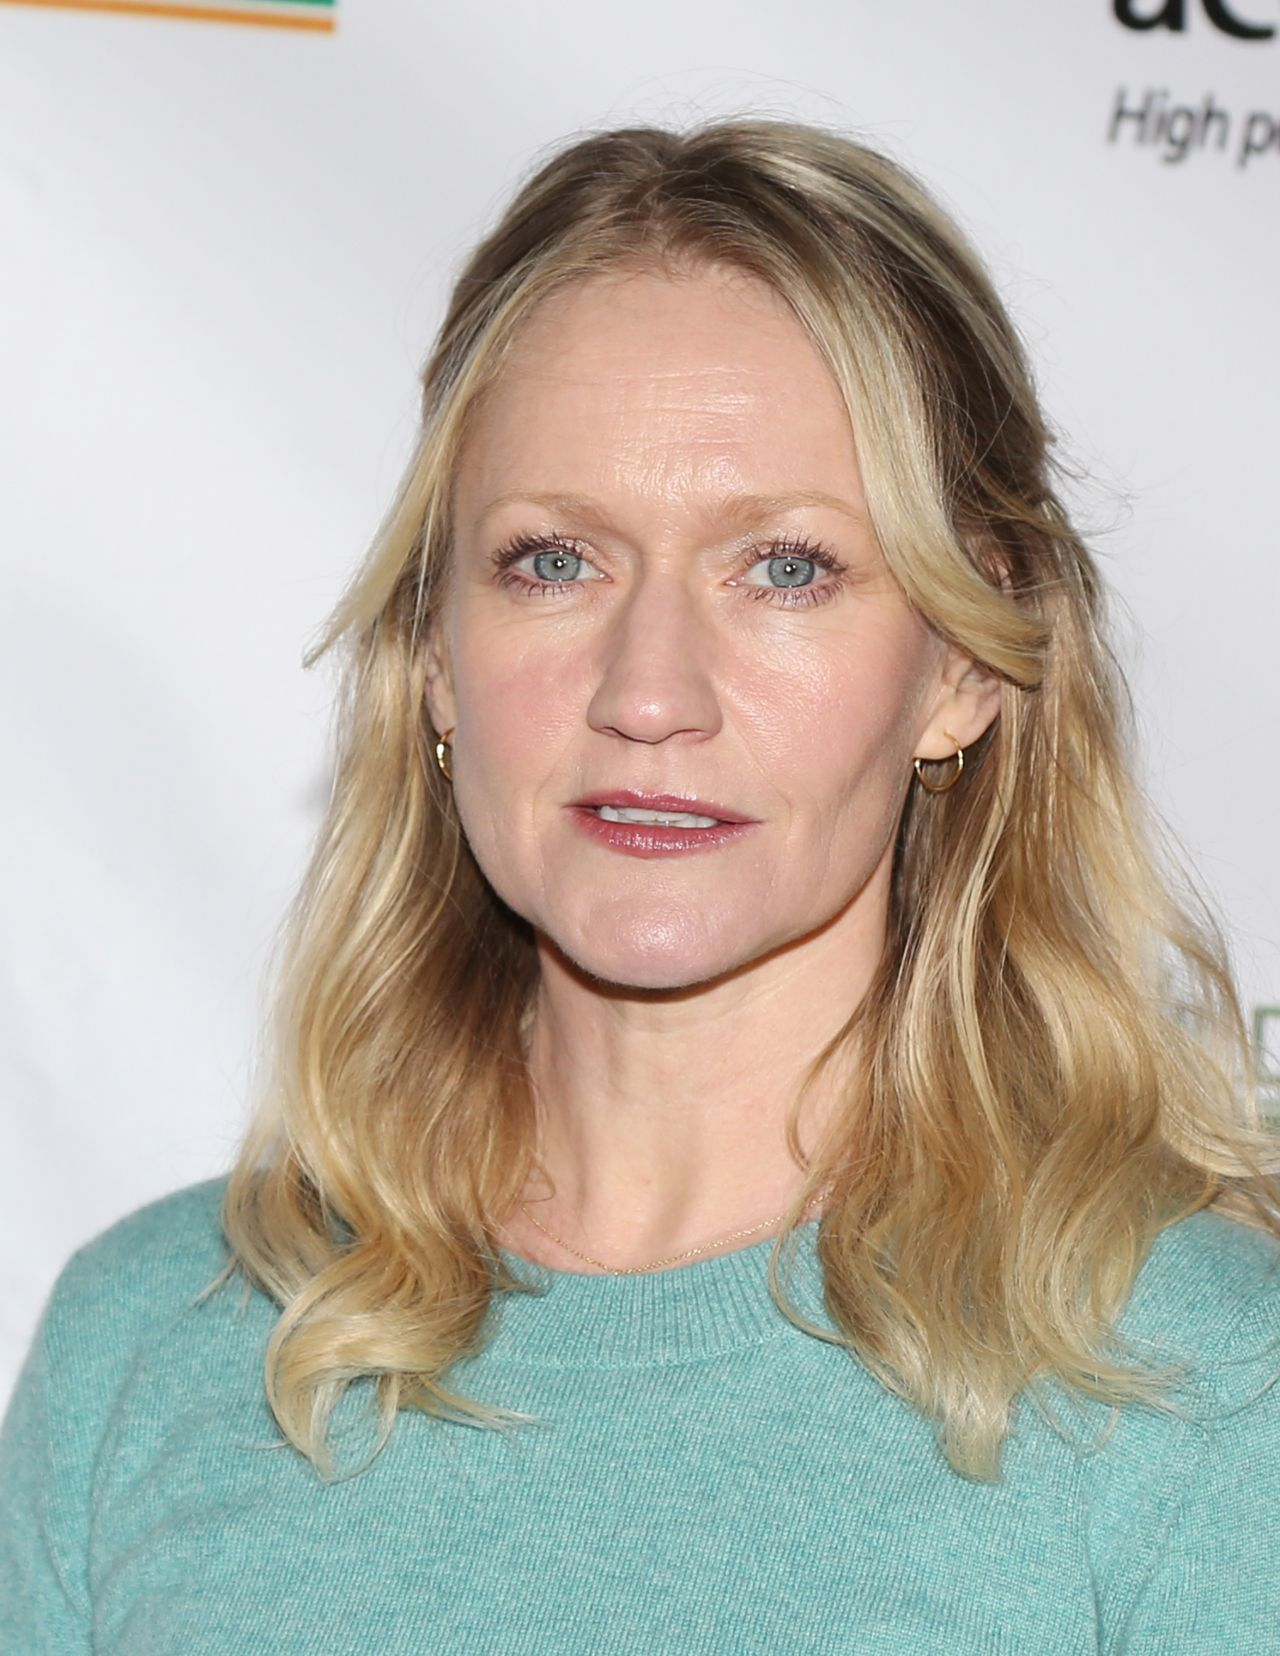 Paula Malcomson  Oscar Wilde Awards in Santa Monica 2/23 - Colorful Hairstyles